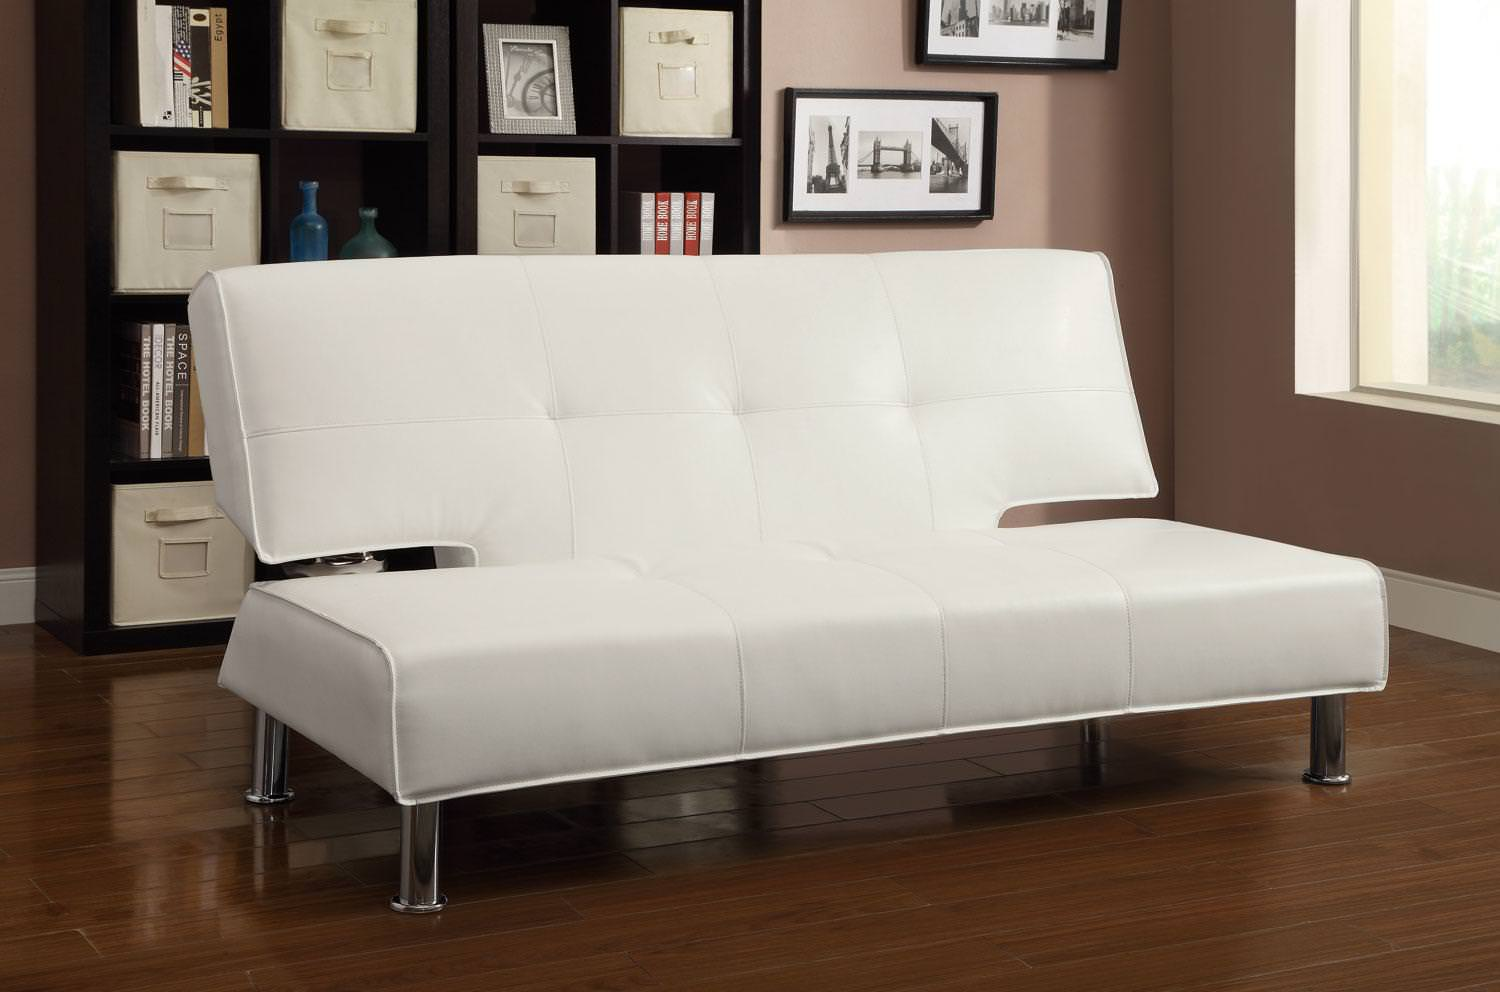 Pleasant 300296 Sofa Bed White By Coaster Machost Co Dining Chair Design Ideas Machostcouk